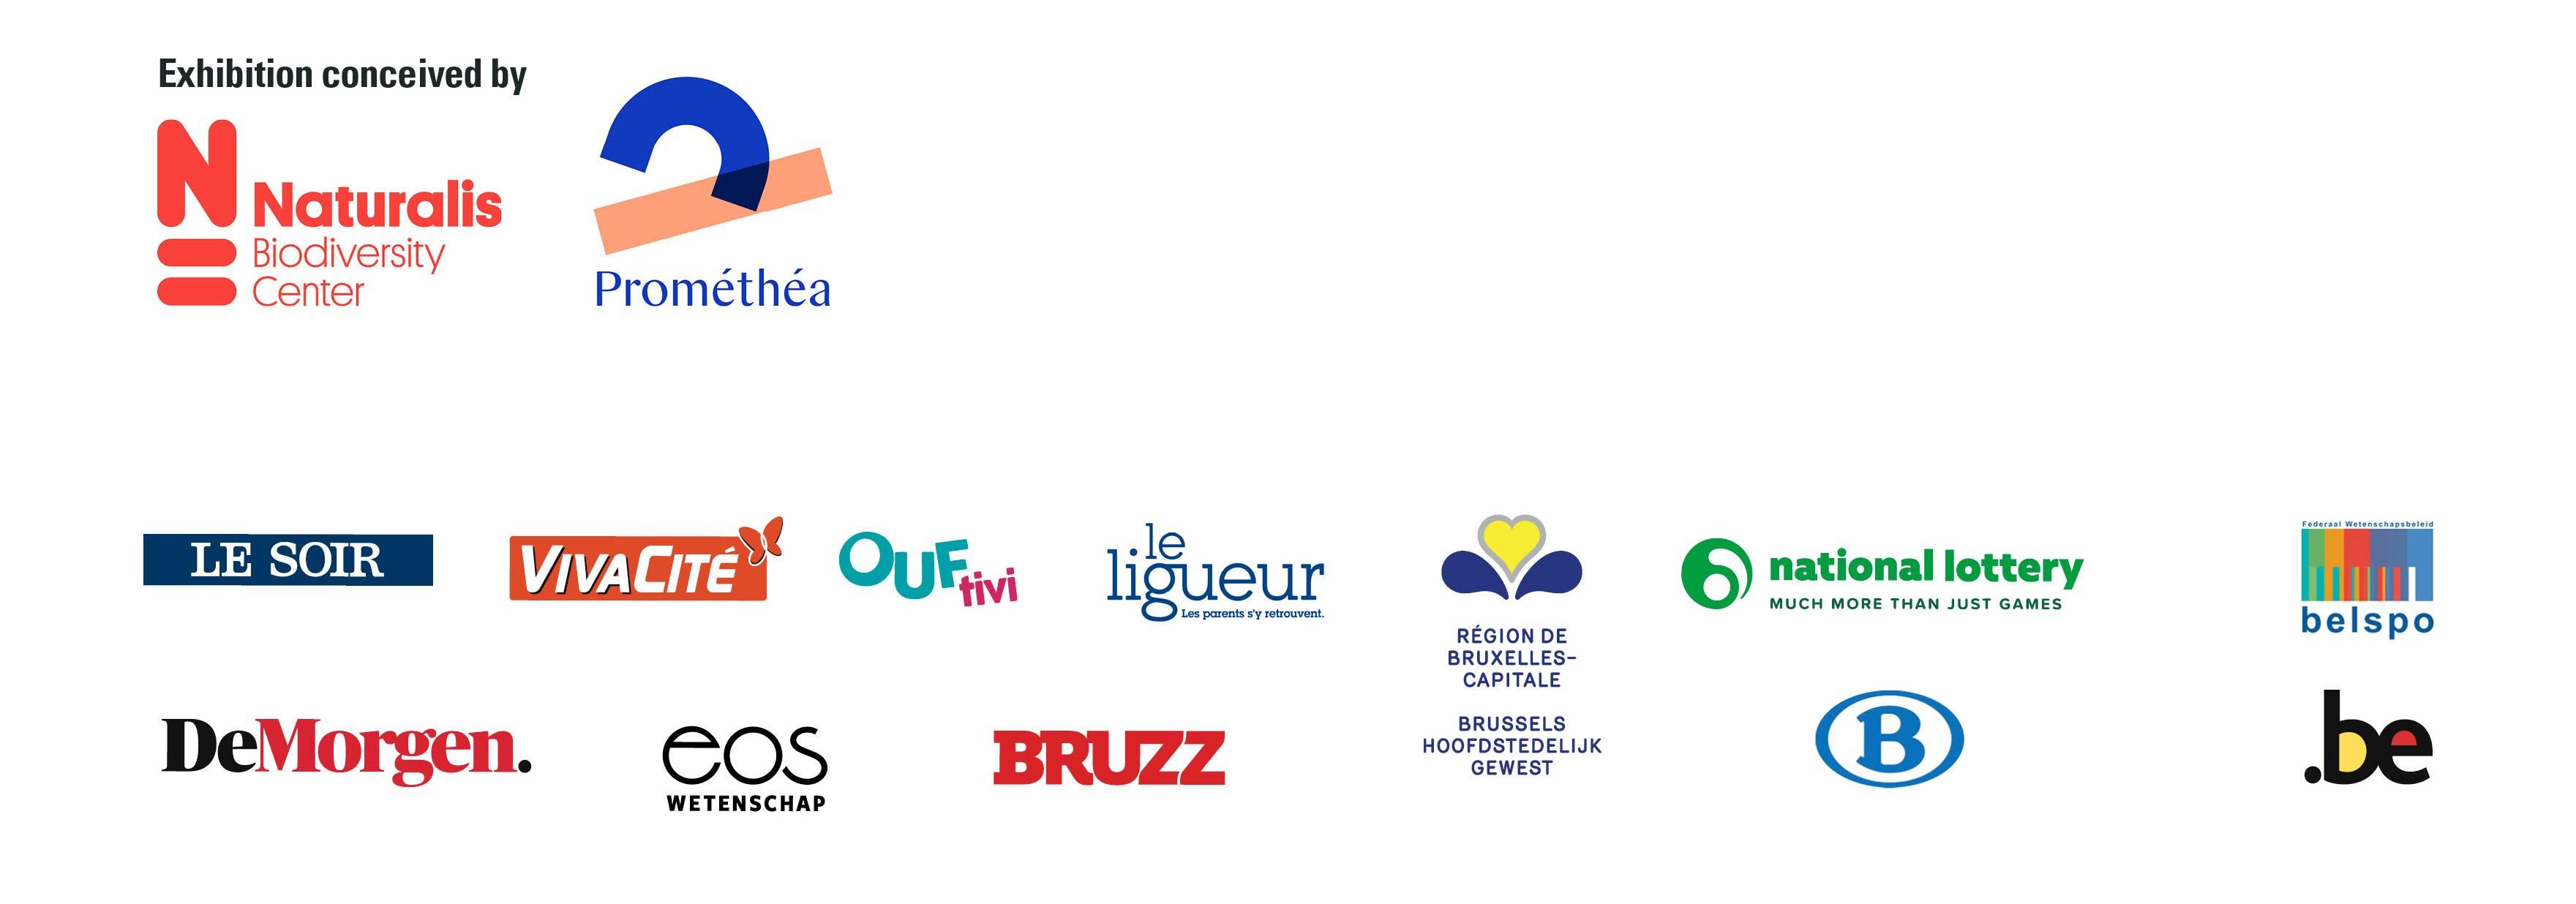 Our partners to the exhibition T. rex